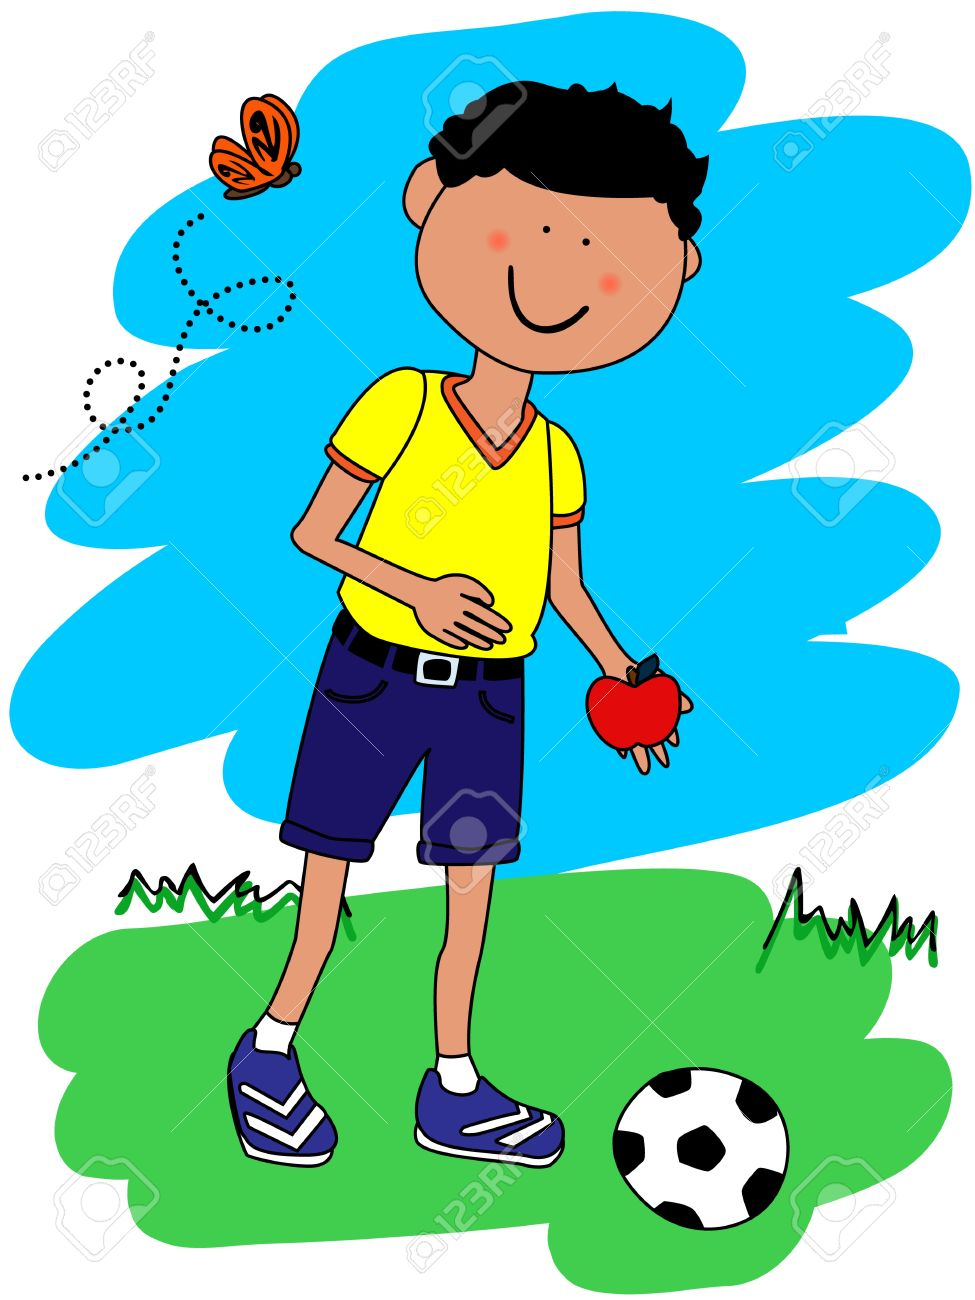 Cute little boy cartoon character going to school with his football or soccer ball and apple Stock Vector - 11029743